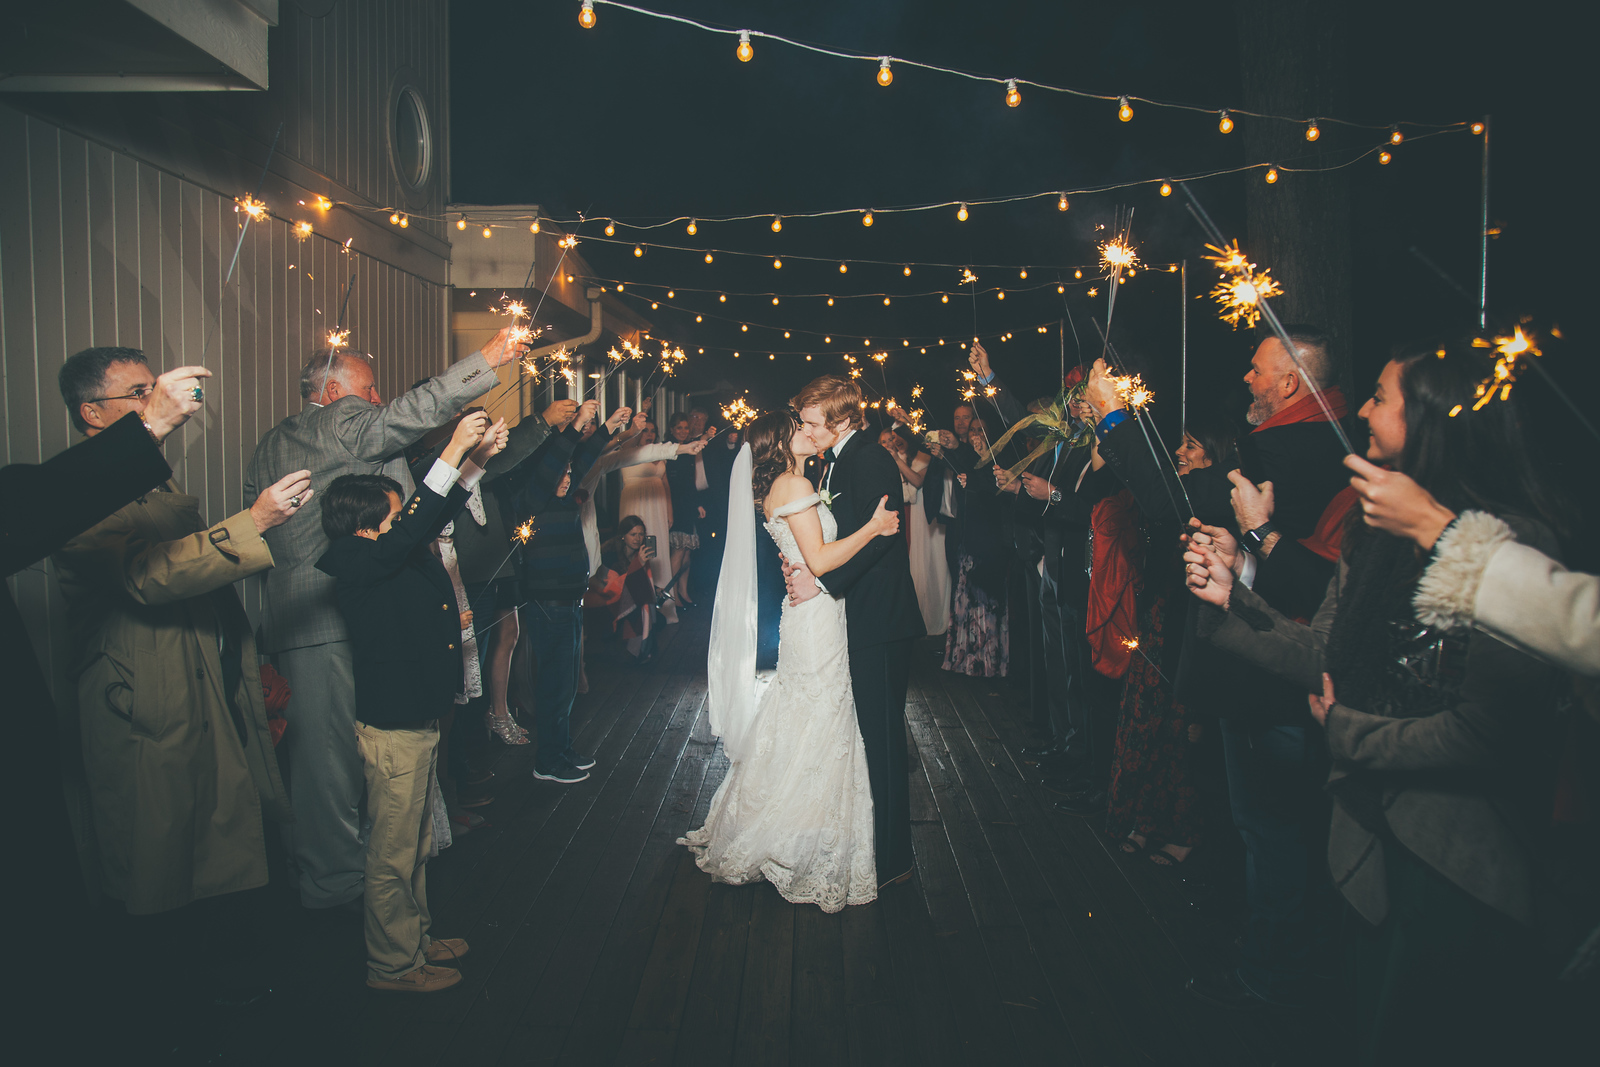 A bride and groom kissing at their grand exit surrounded by guests with sparklers and string lights above